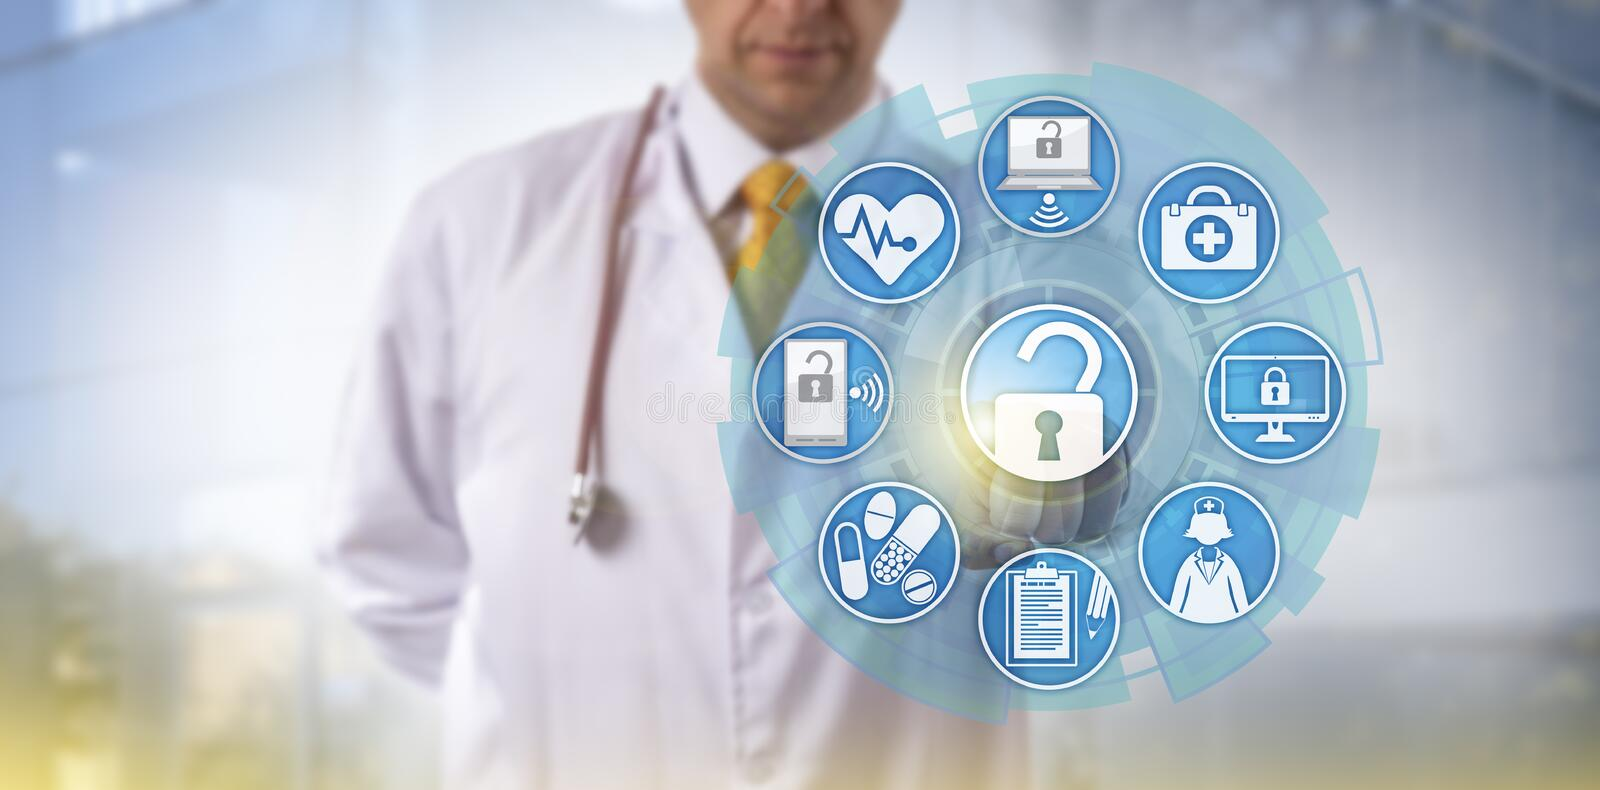 Doctor Initiating Health Information Exchange. Unrecognizable doctor of medicine is accessing online healthcare data via a touch screen interface. Cyber security